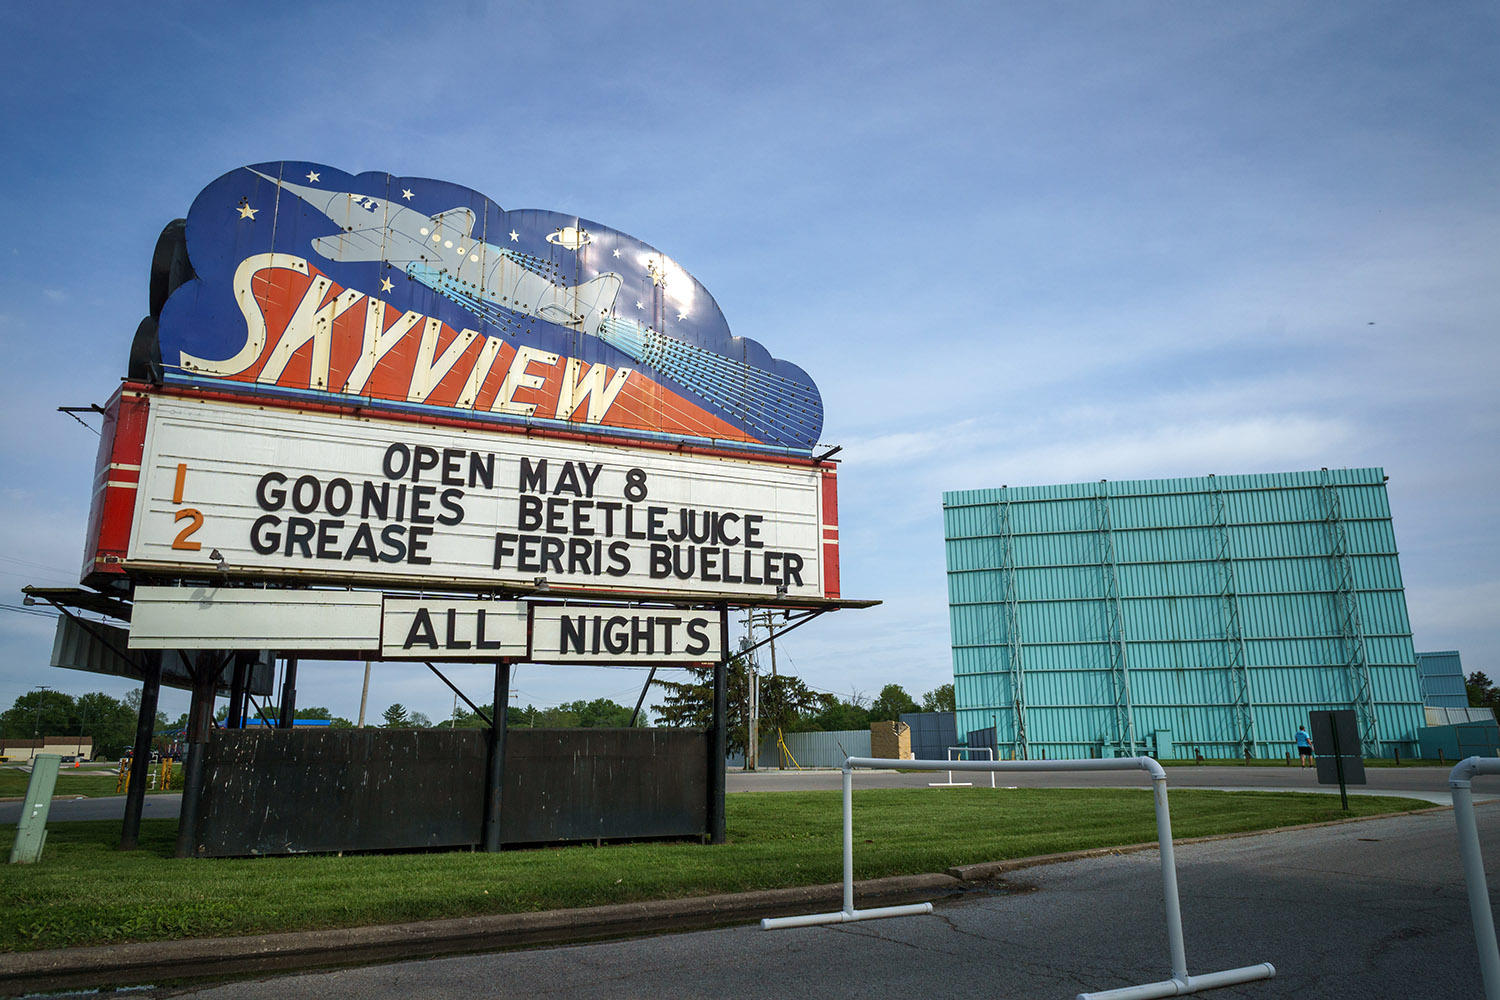 Skyview Drive In Meets Movie Demand For Crowds Tired Of Being Homebound Kbia